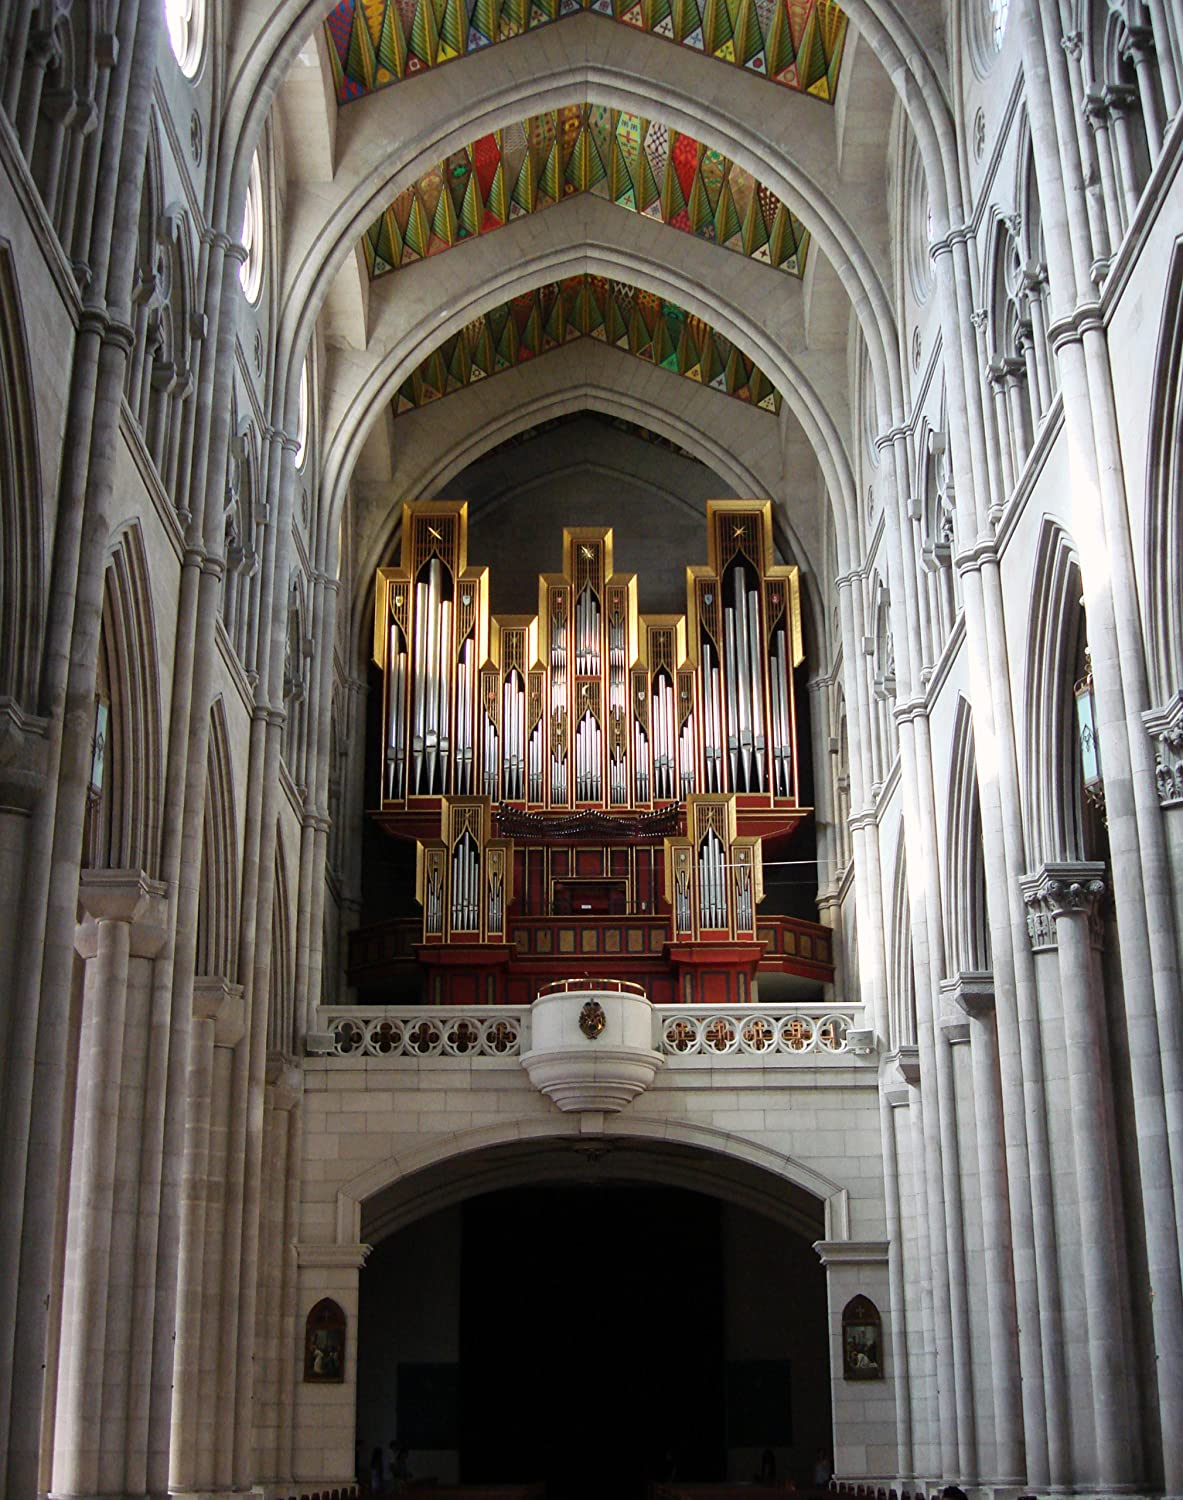 Amazon.com: Organ At Almudena Cathedral, Madrid, Spain ...